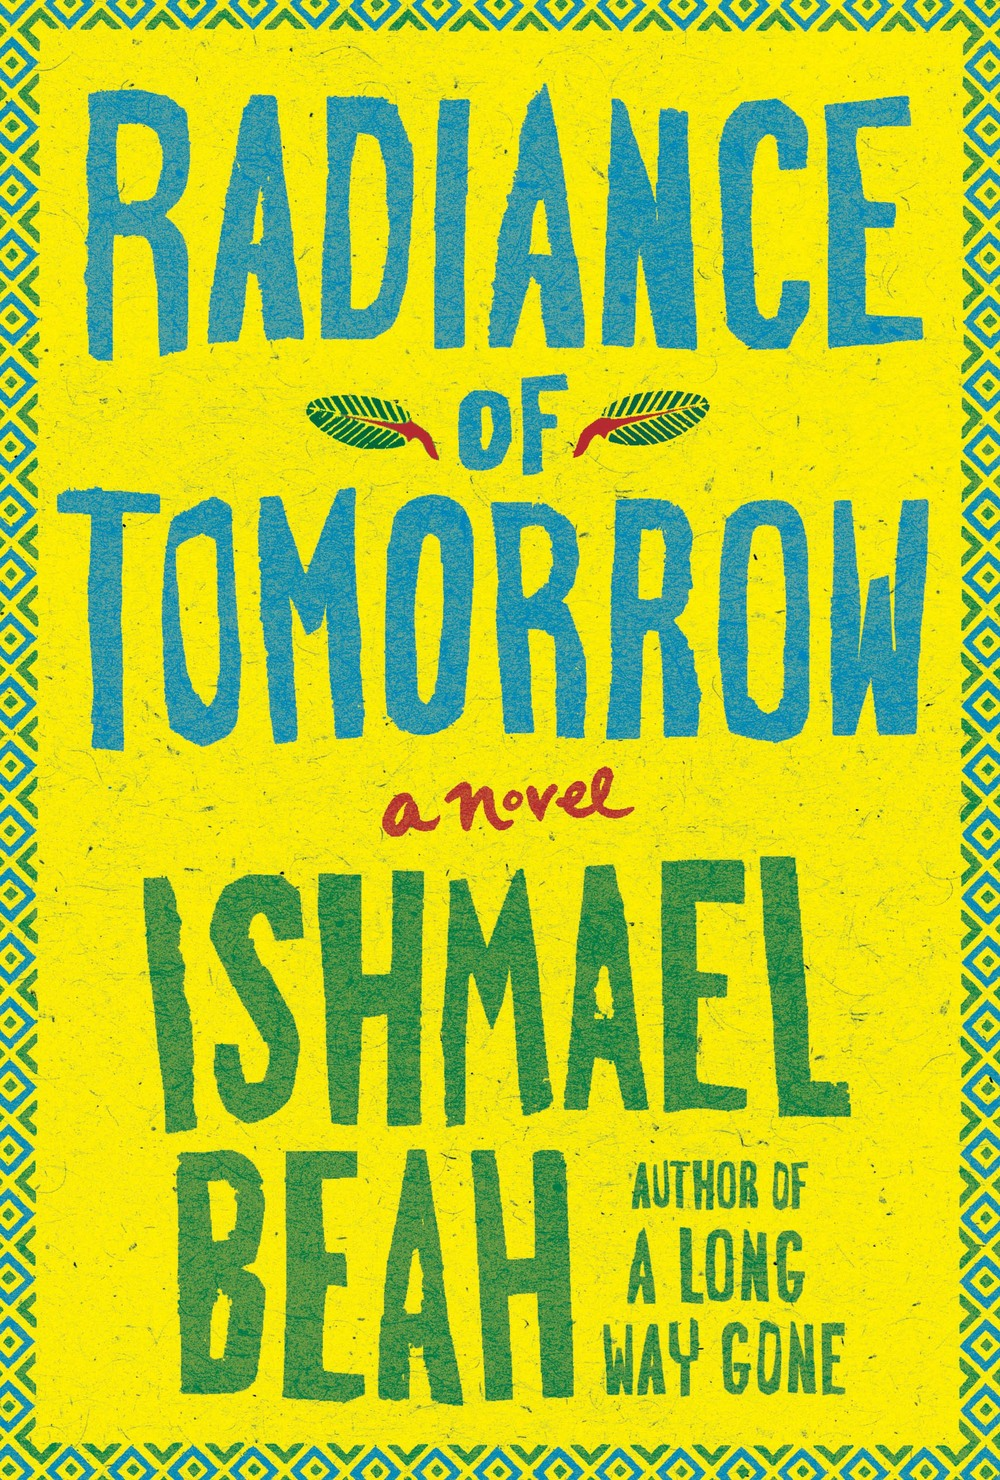 Radiance of Tomorrow by Ishmael Beah.jpg